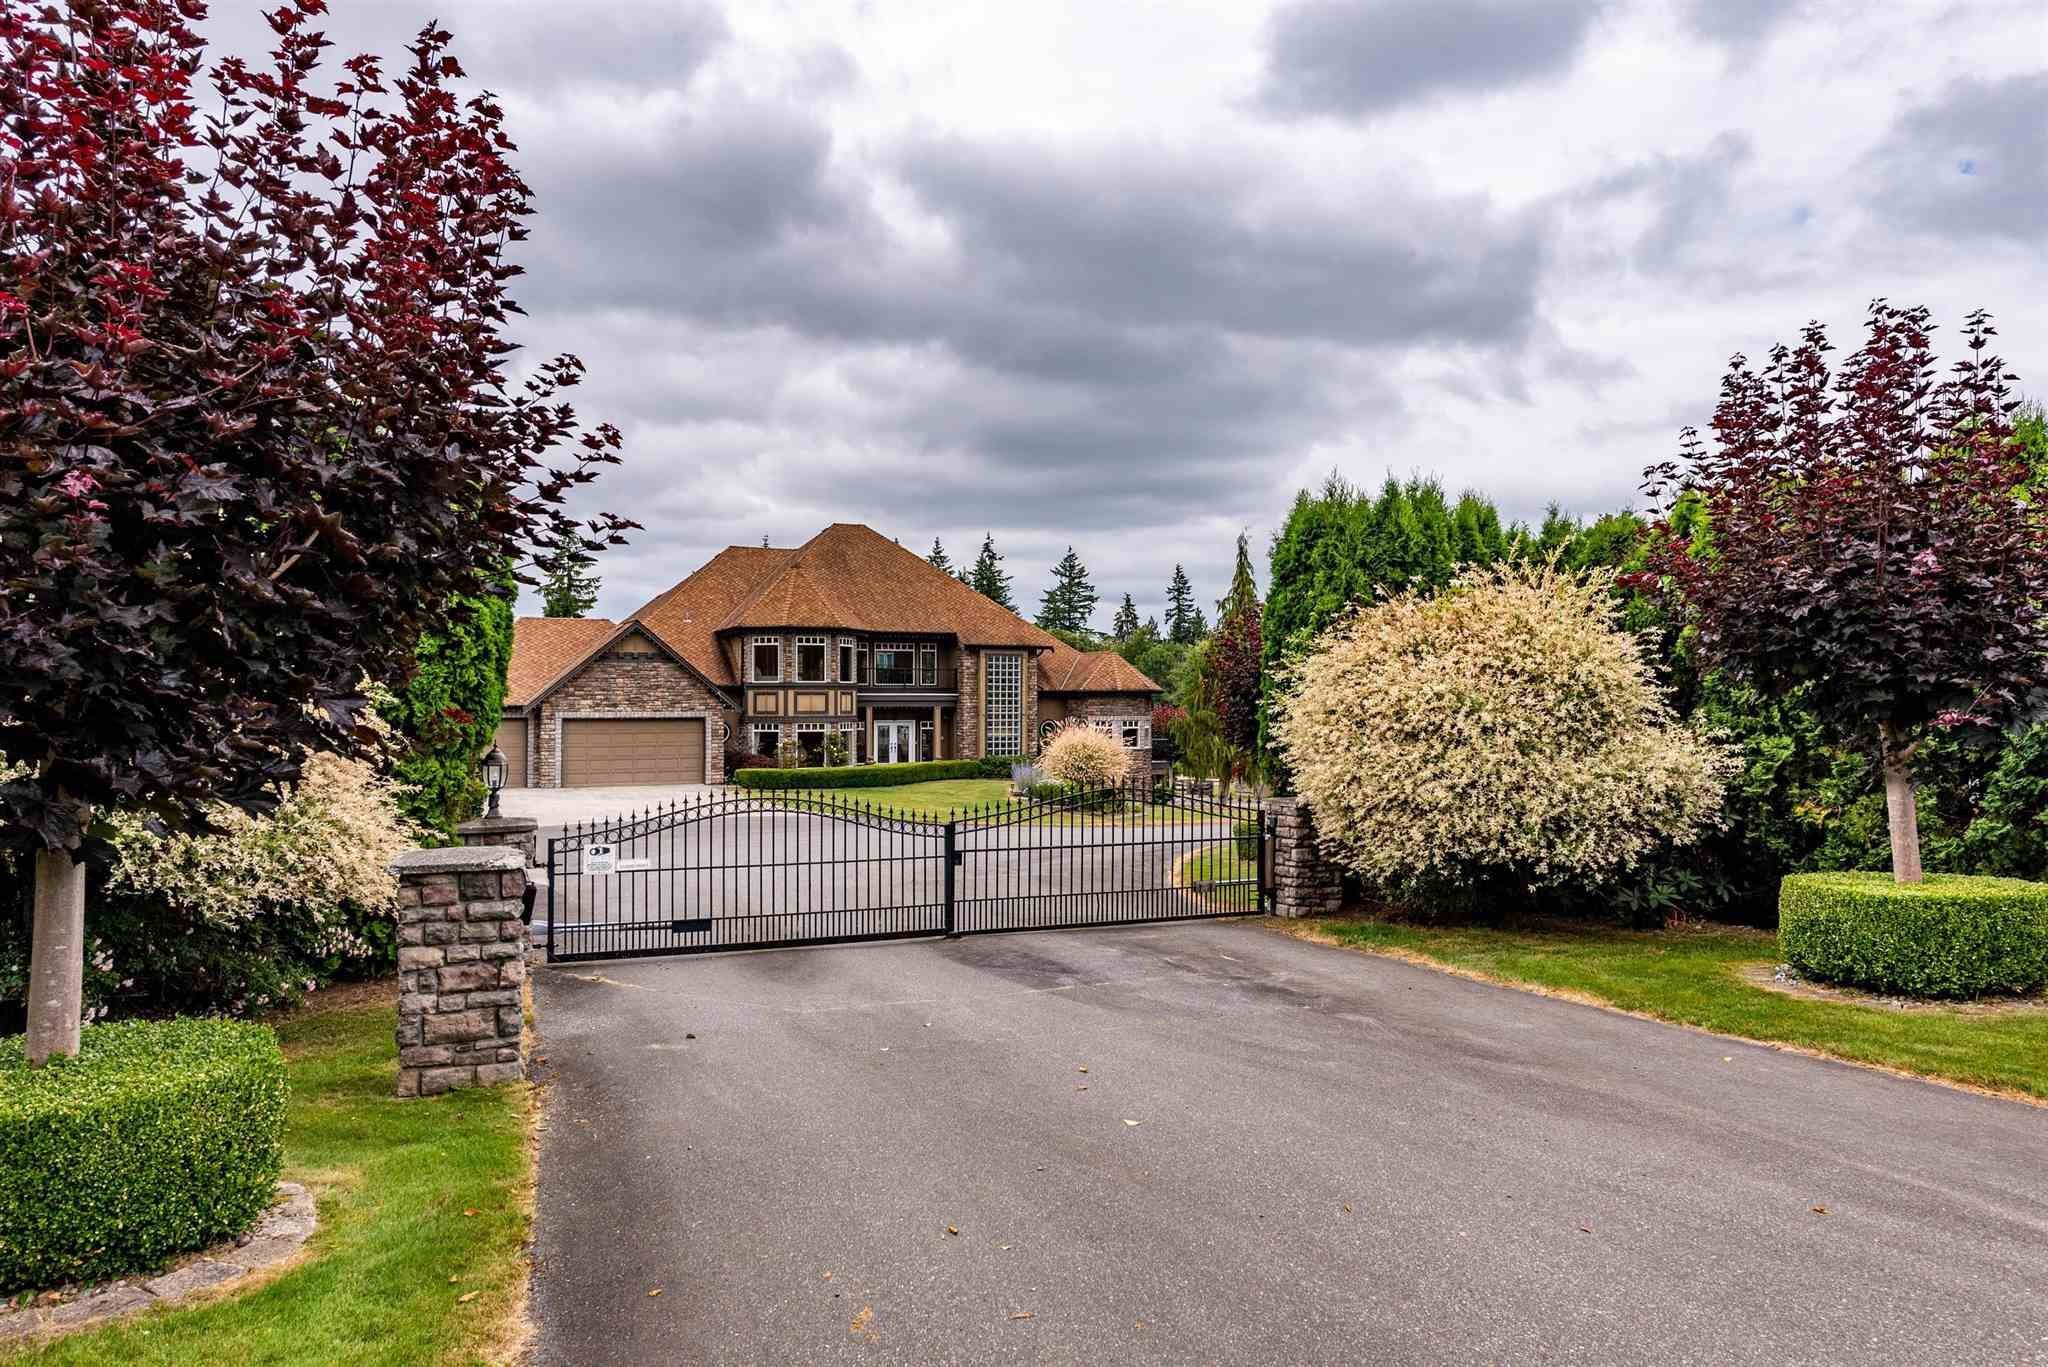 Main Photo: 25309 72 Avenue in Langley: County Line Glen Valley House for sale : MLS®# R2600081